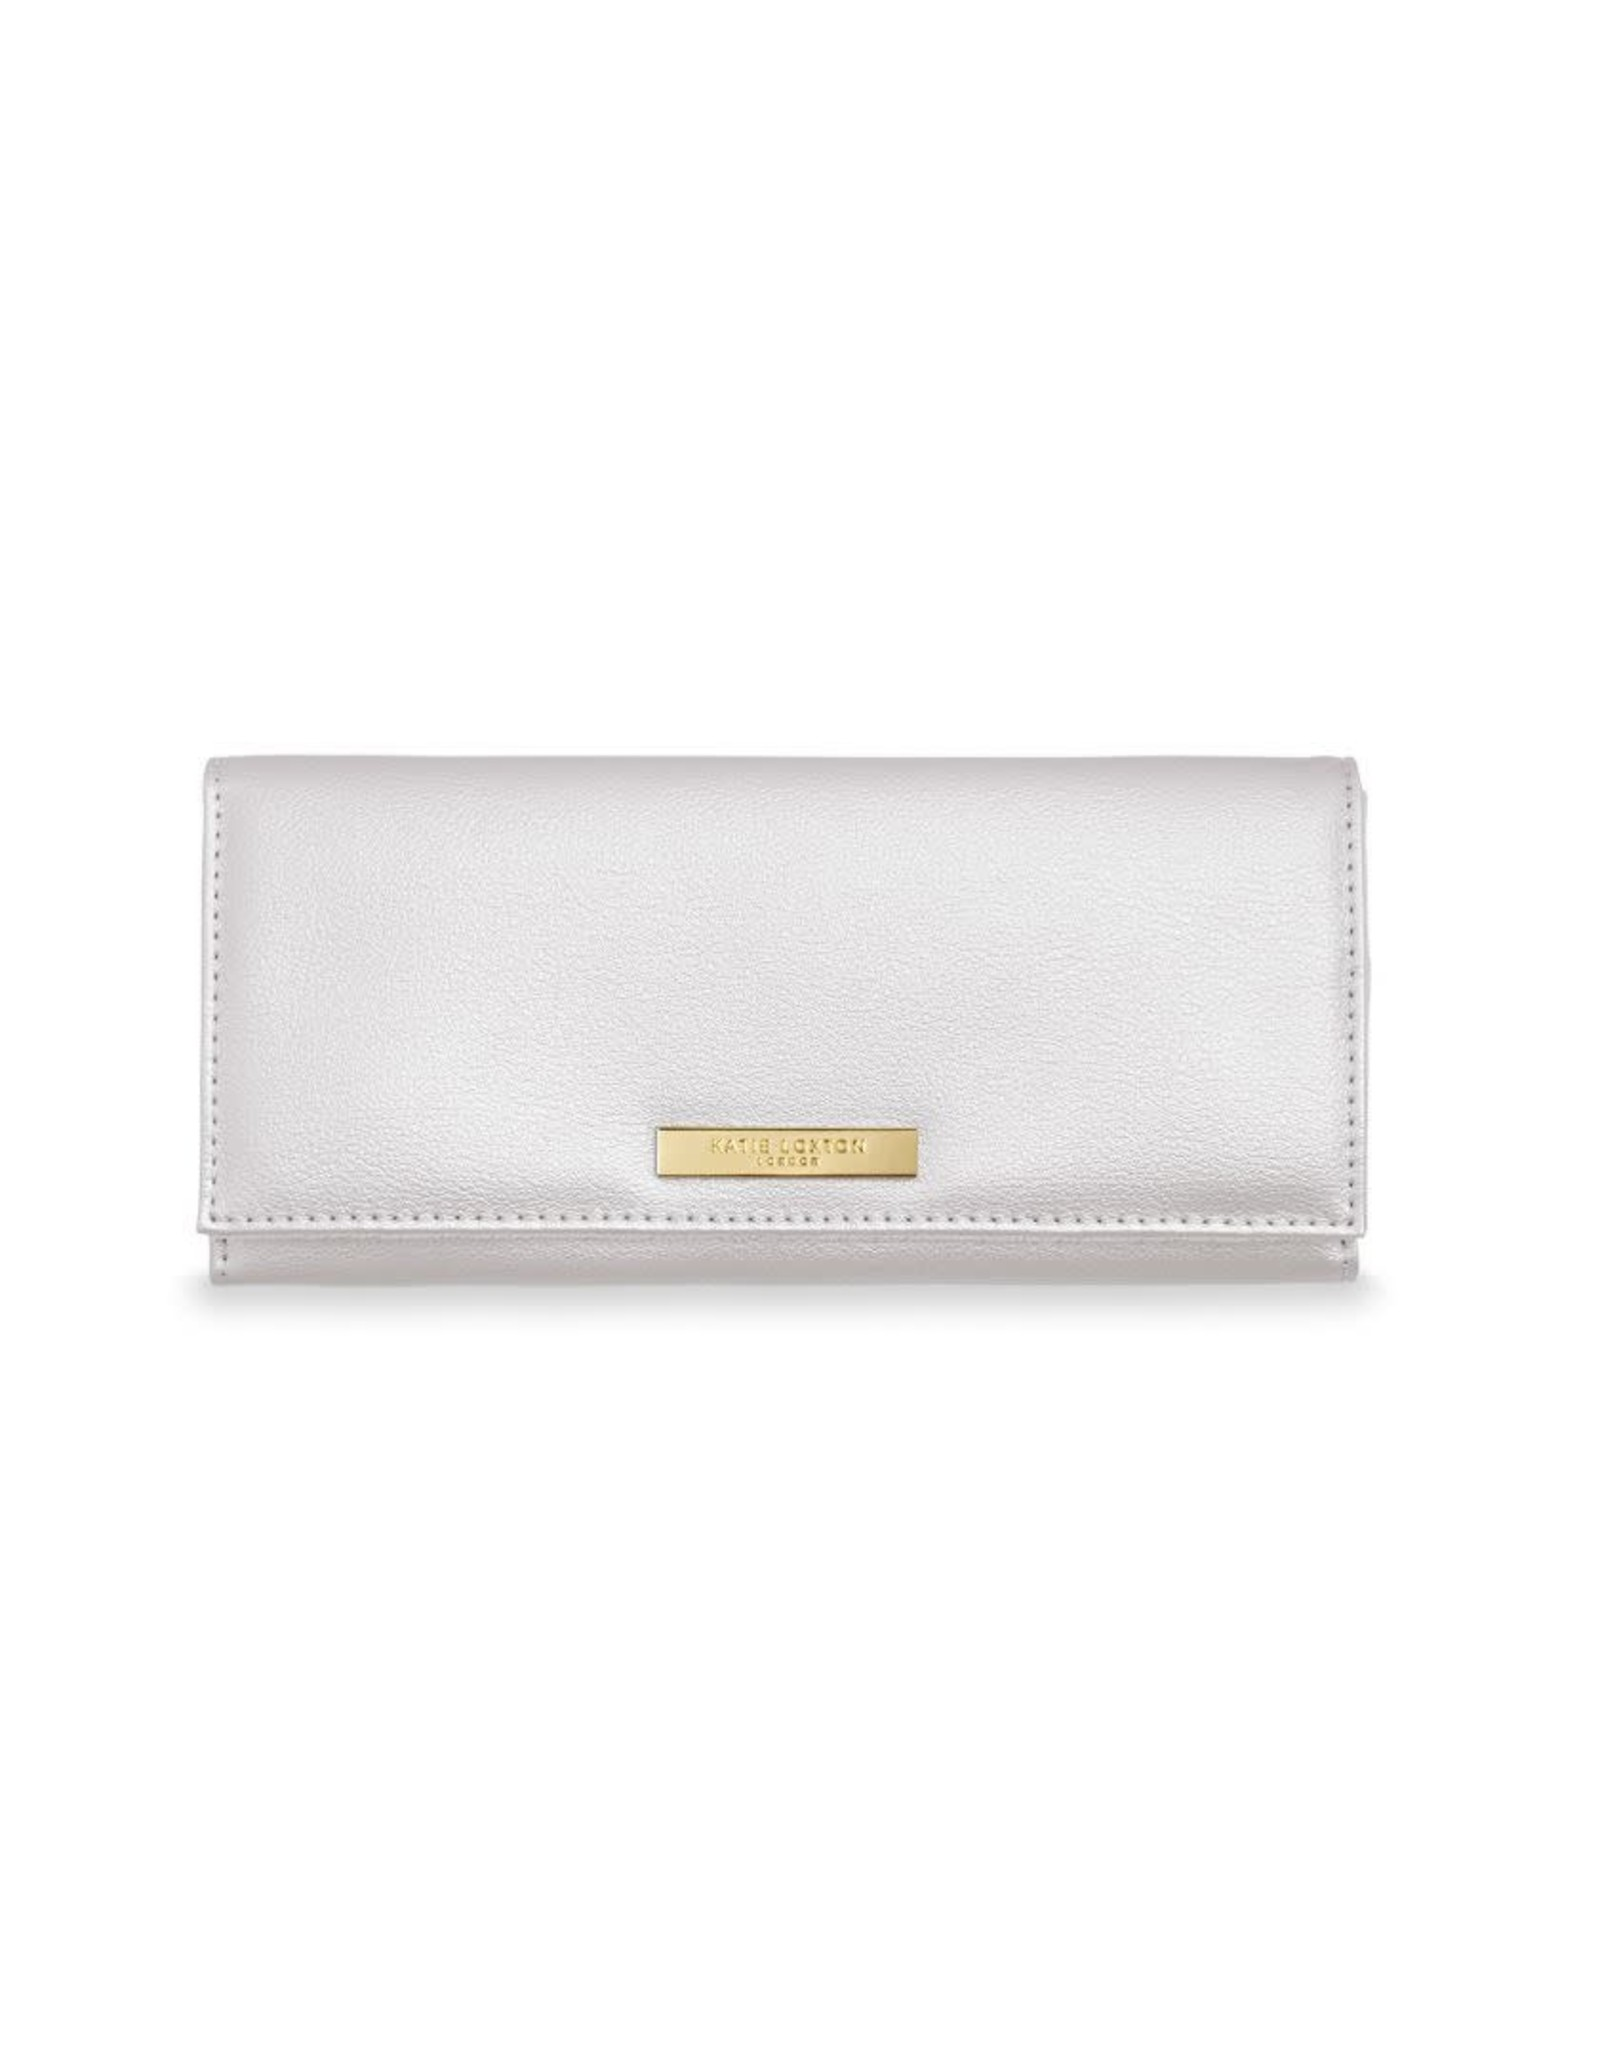 Katie Loxton Juwelenrol -  Happy Ever After - Parelmoer wit